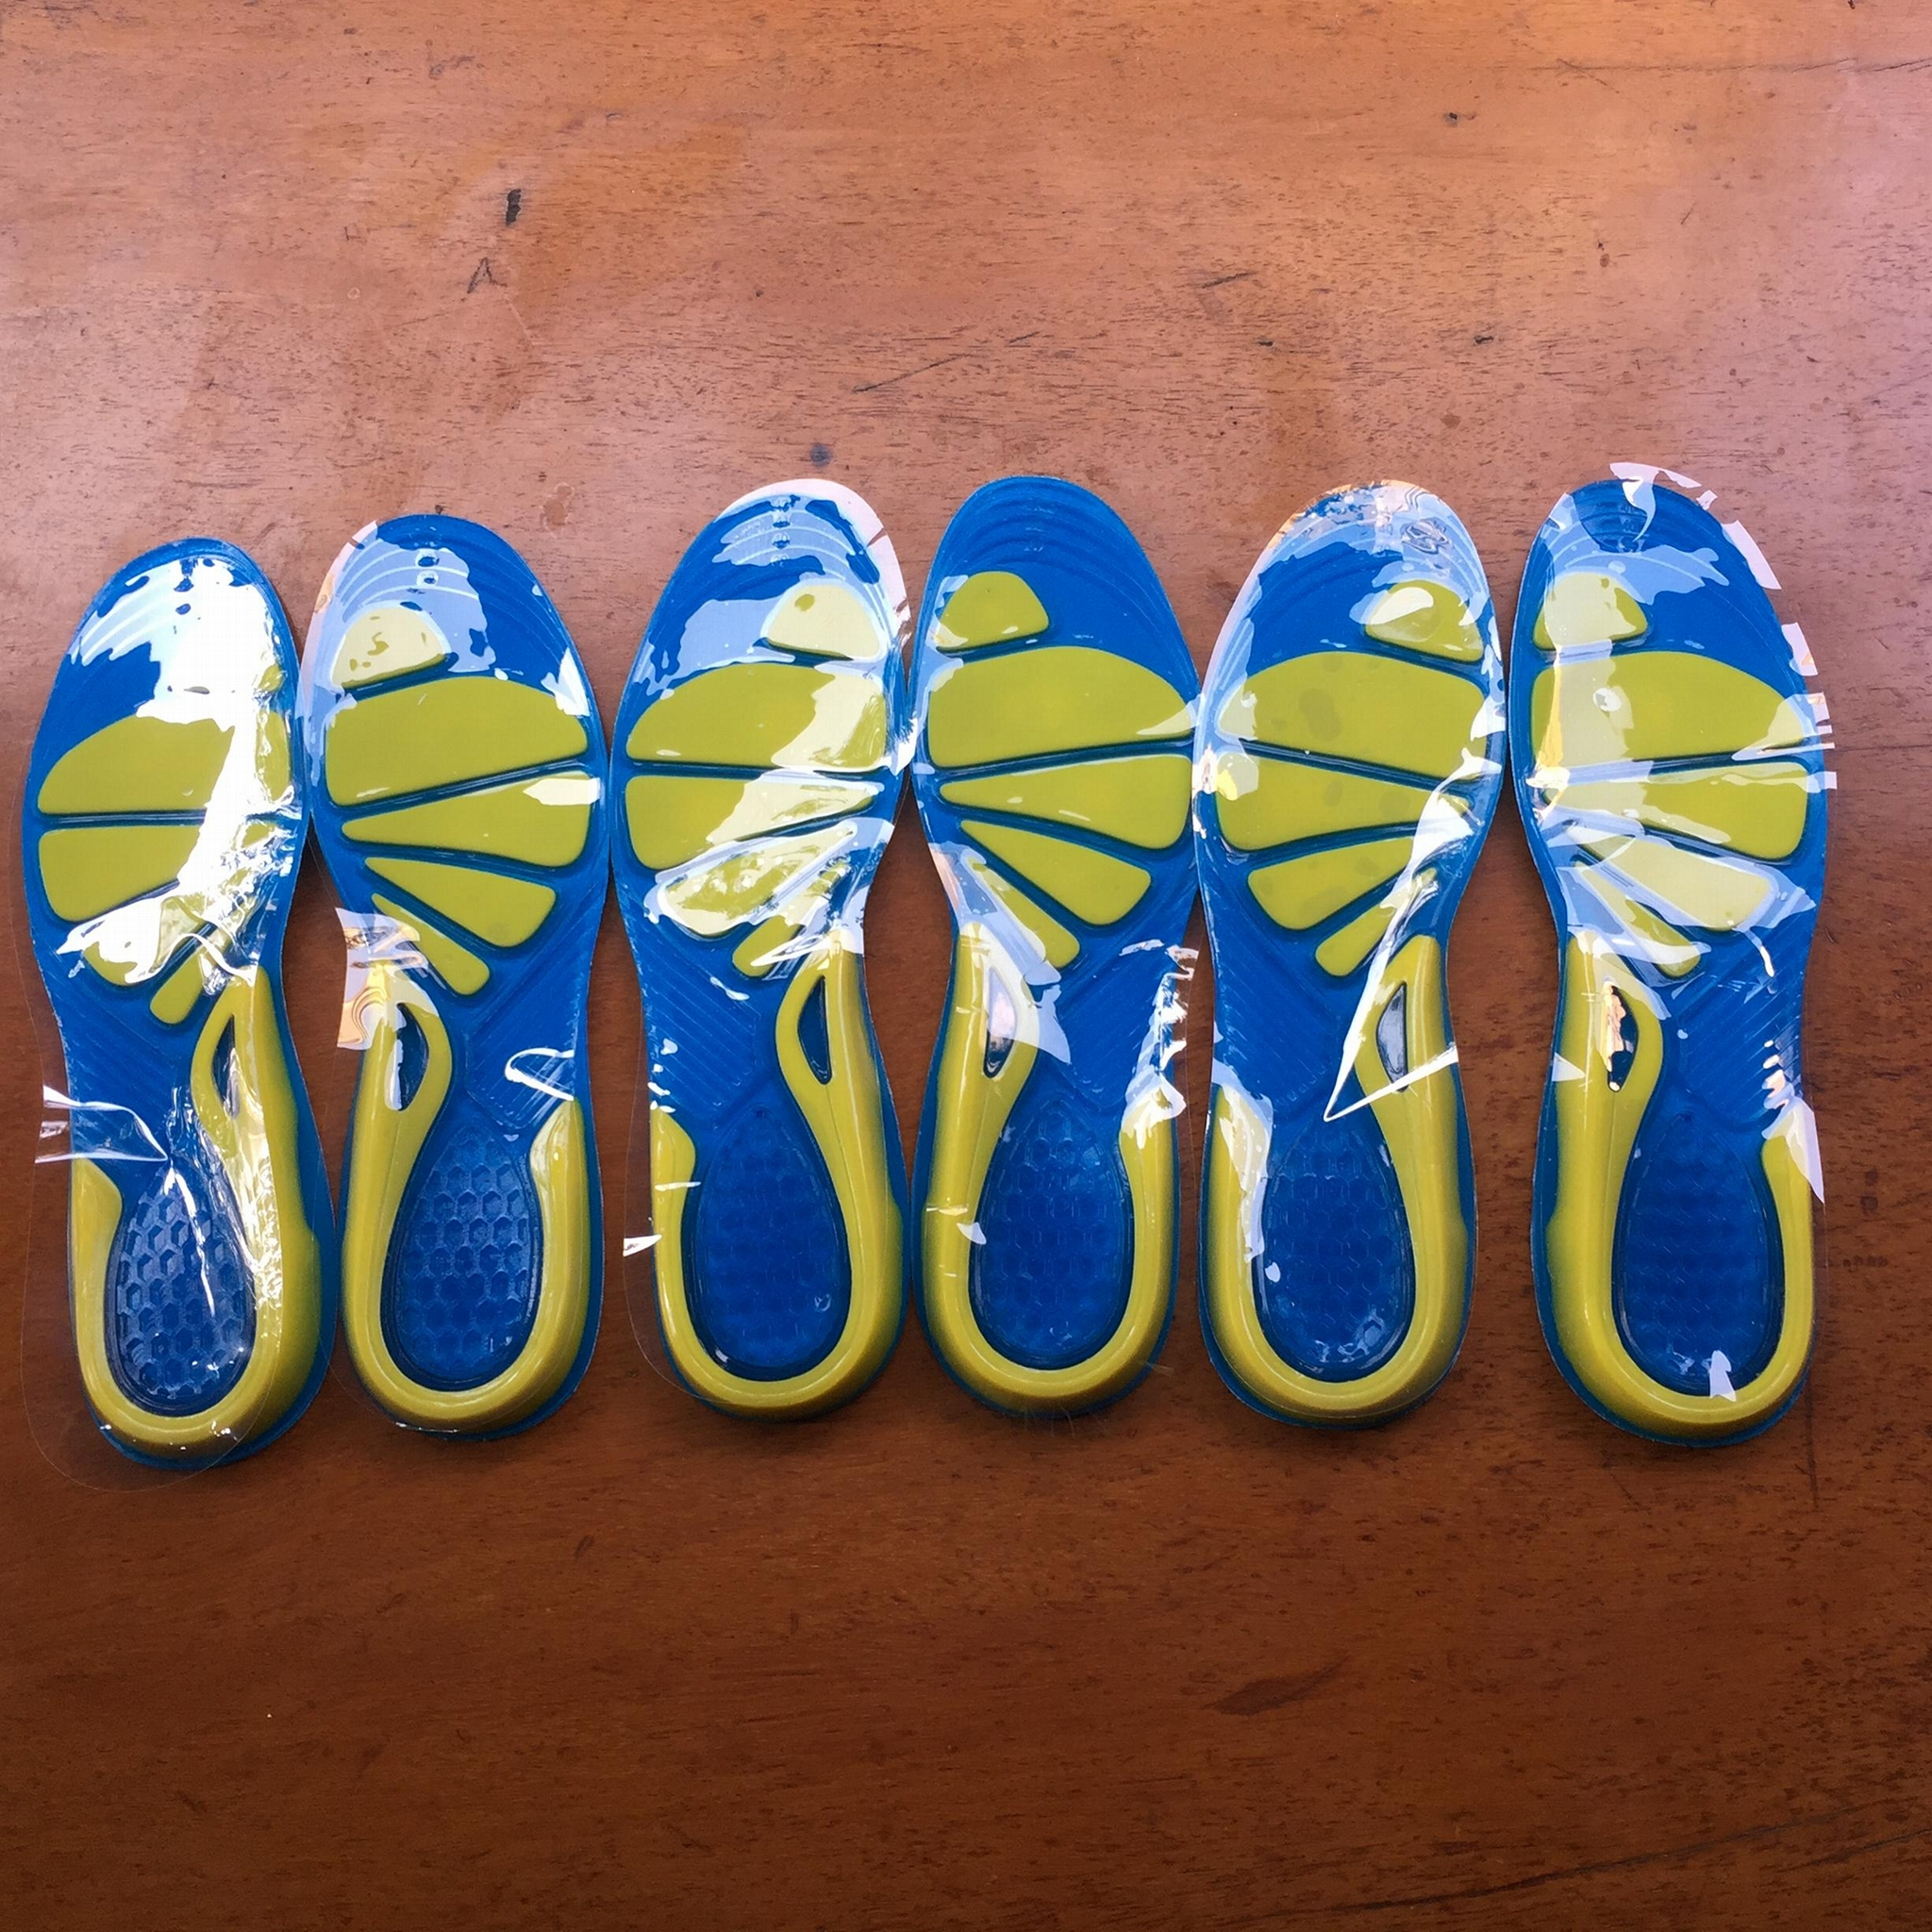 Running Sport Insoles Silicone Gel Insoles Foot Care for Plantar Fascitis Heel  2